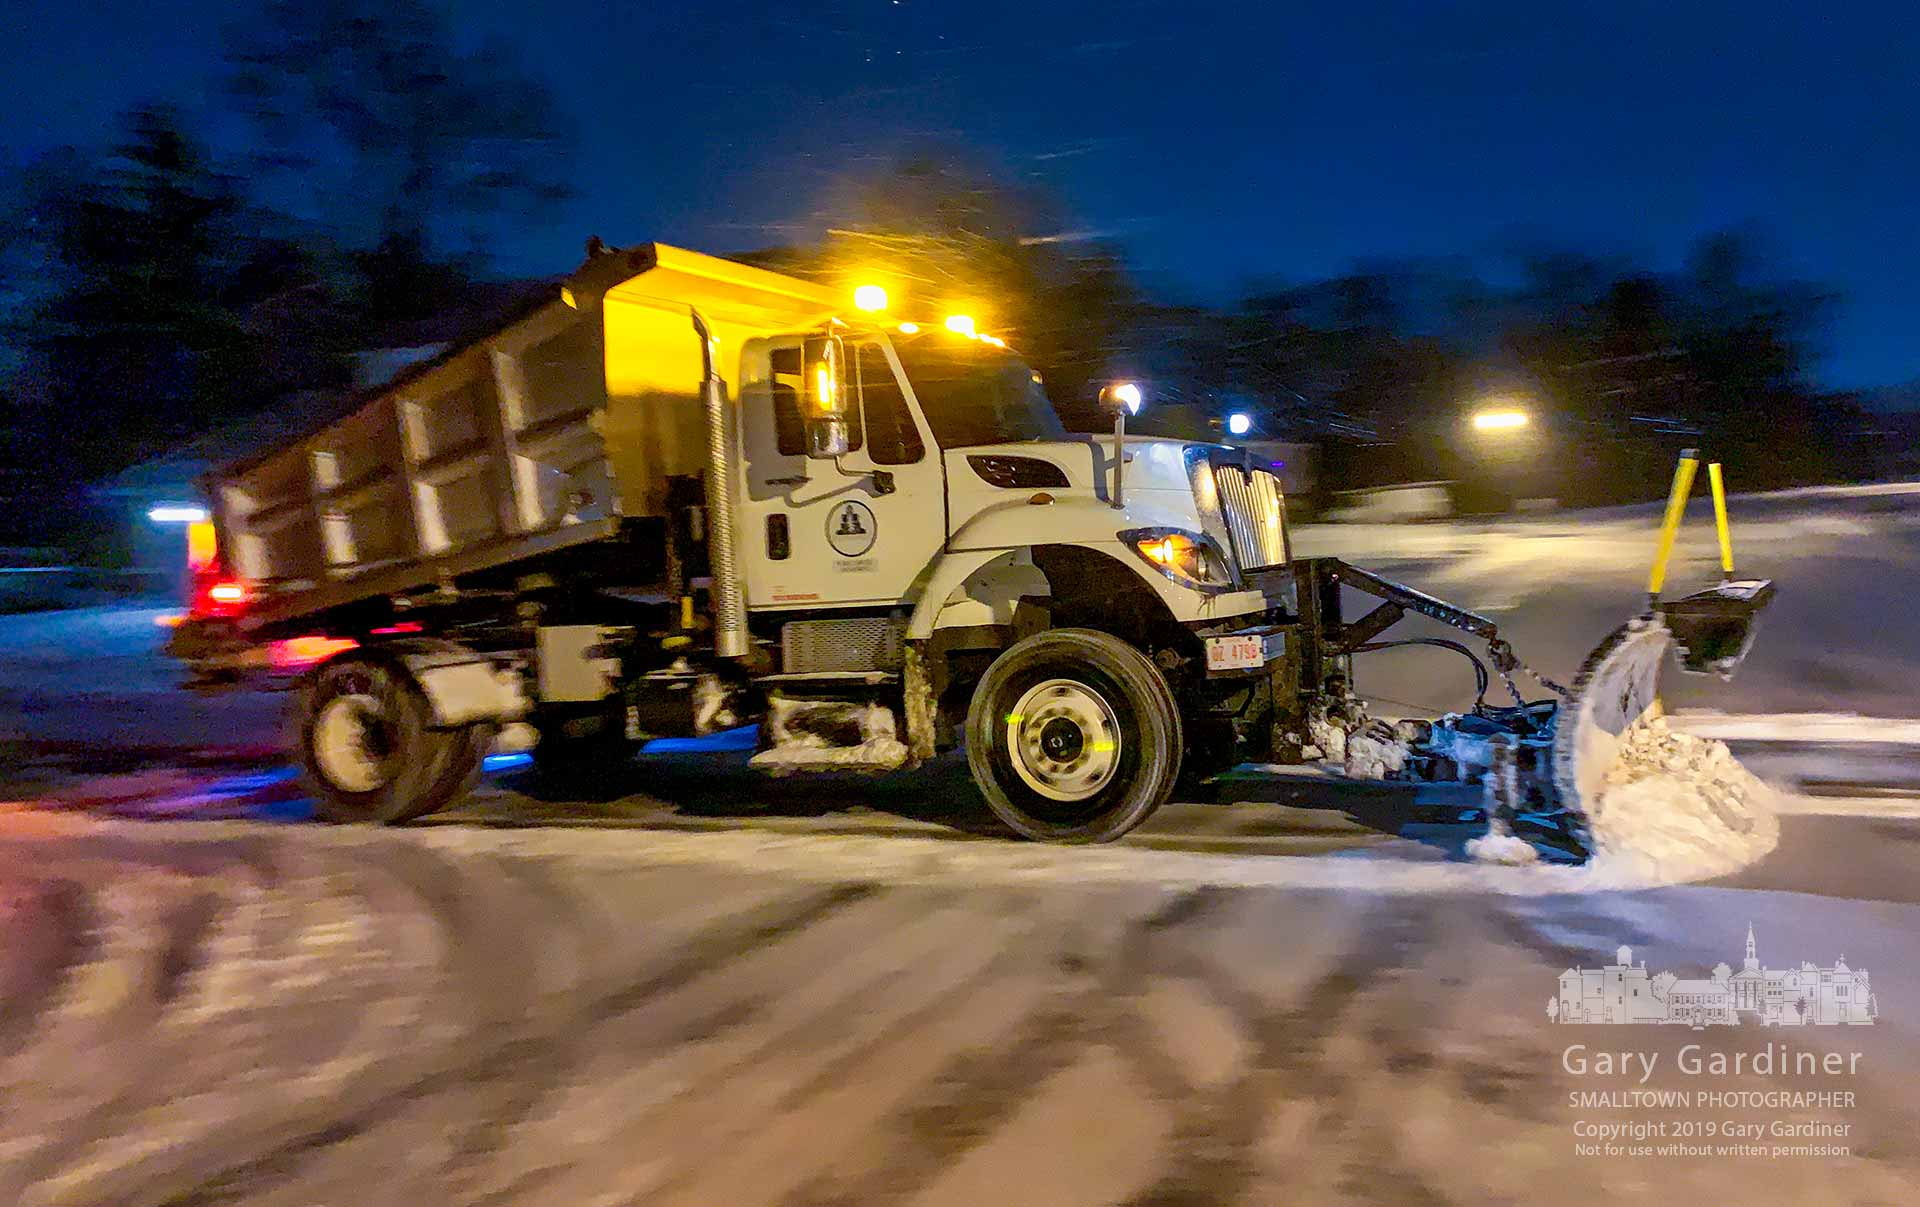 A Westerville snow plow and salt truck runs across Gentlewind Drive on its way to plow side streets after an overnight storm dropped more snow on the city. My Final Photo for Jan. 20, 2019.